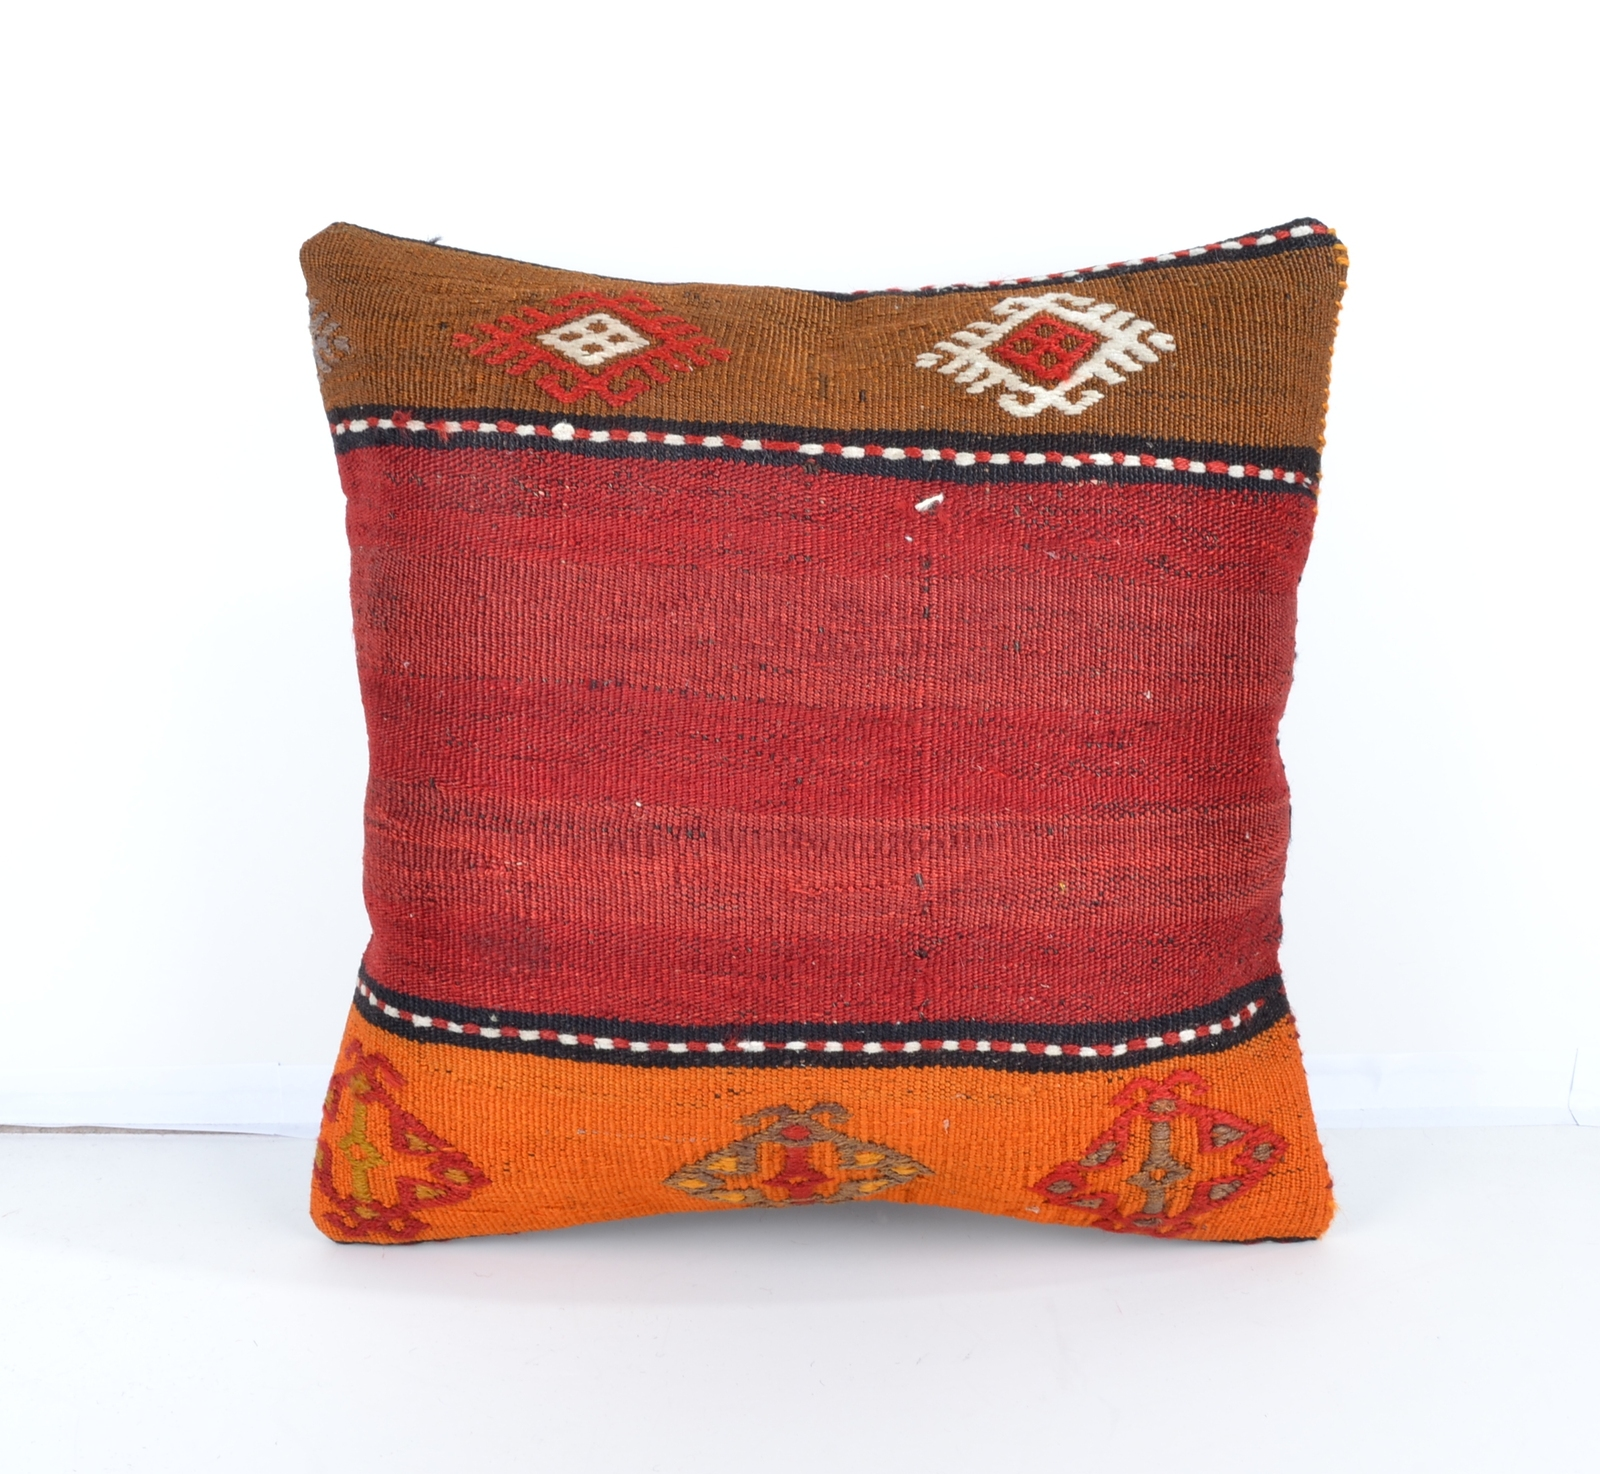 Turkish Kilim Throw Pillows : Vintage, kilim cushion,kilim pillow cover, turkish pillow , pillow, throw pillow - Pillows